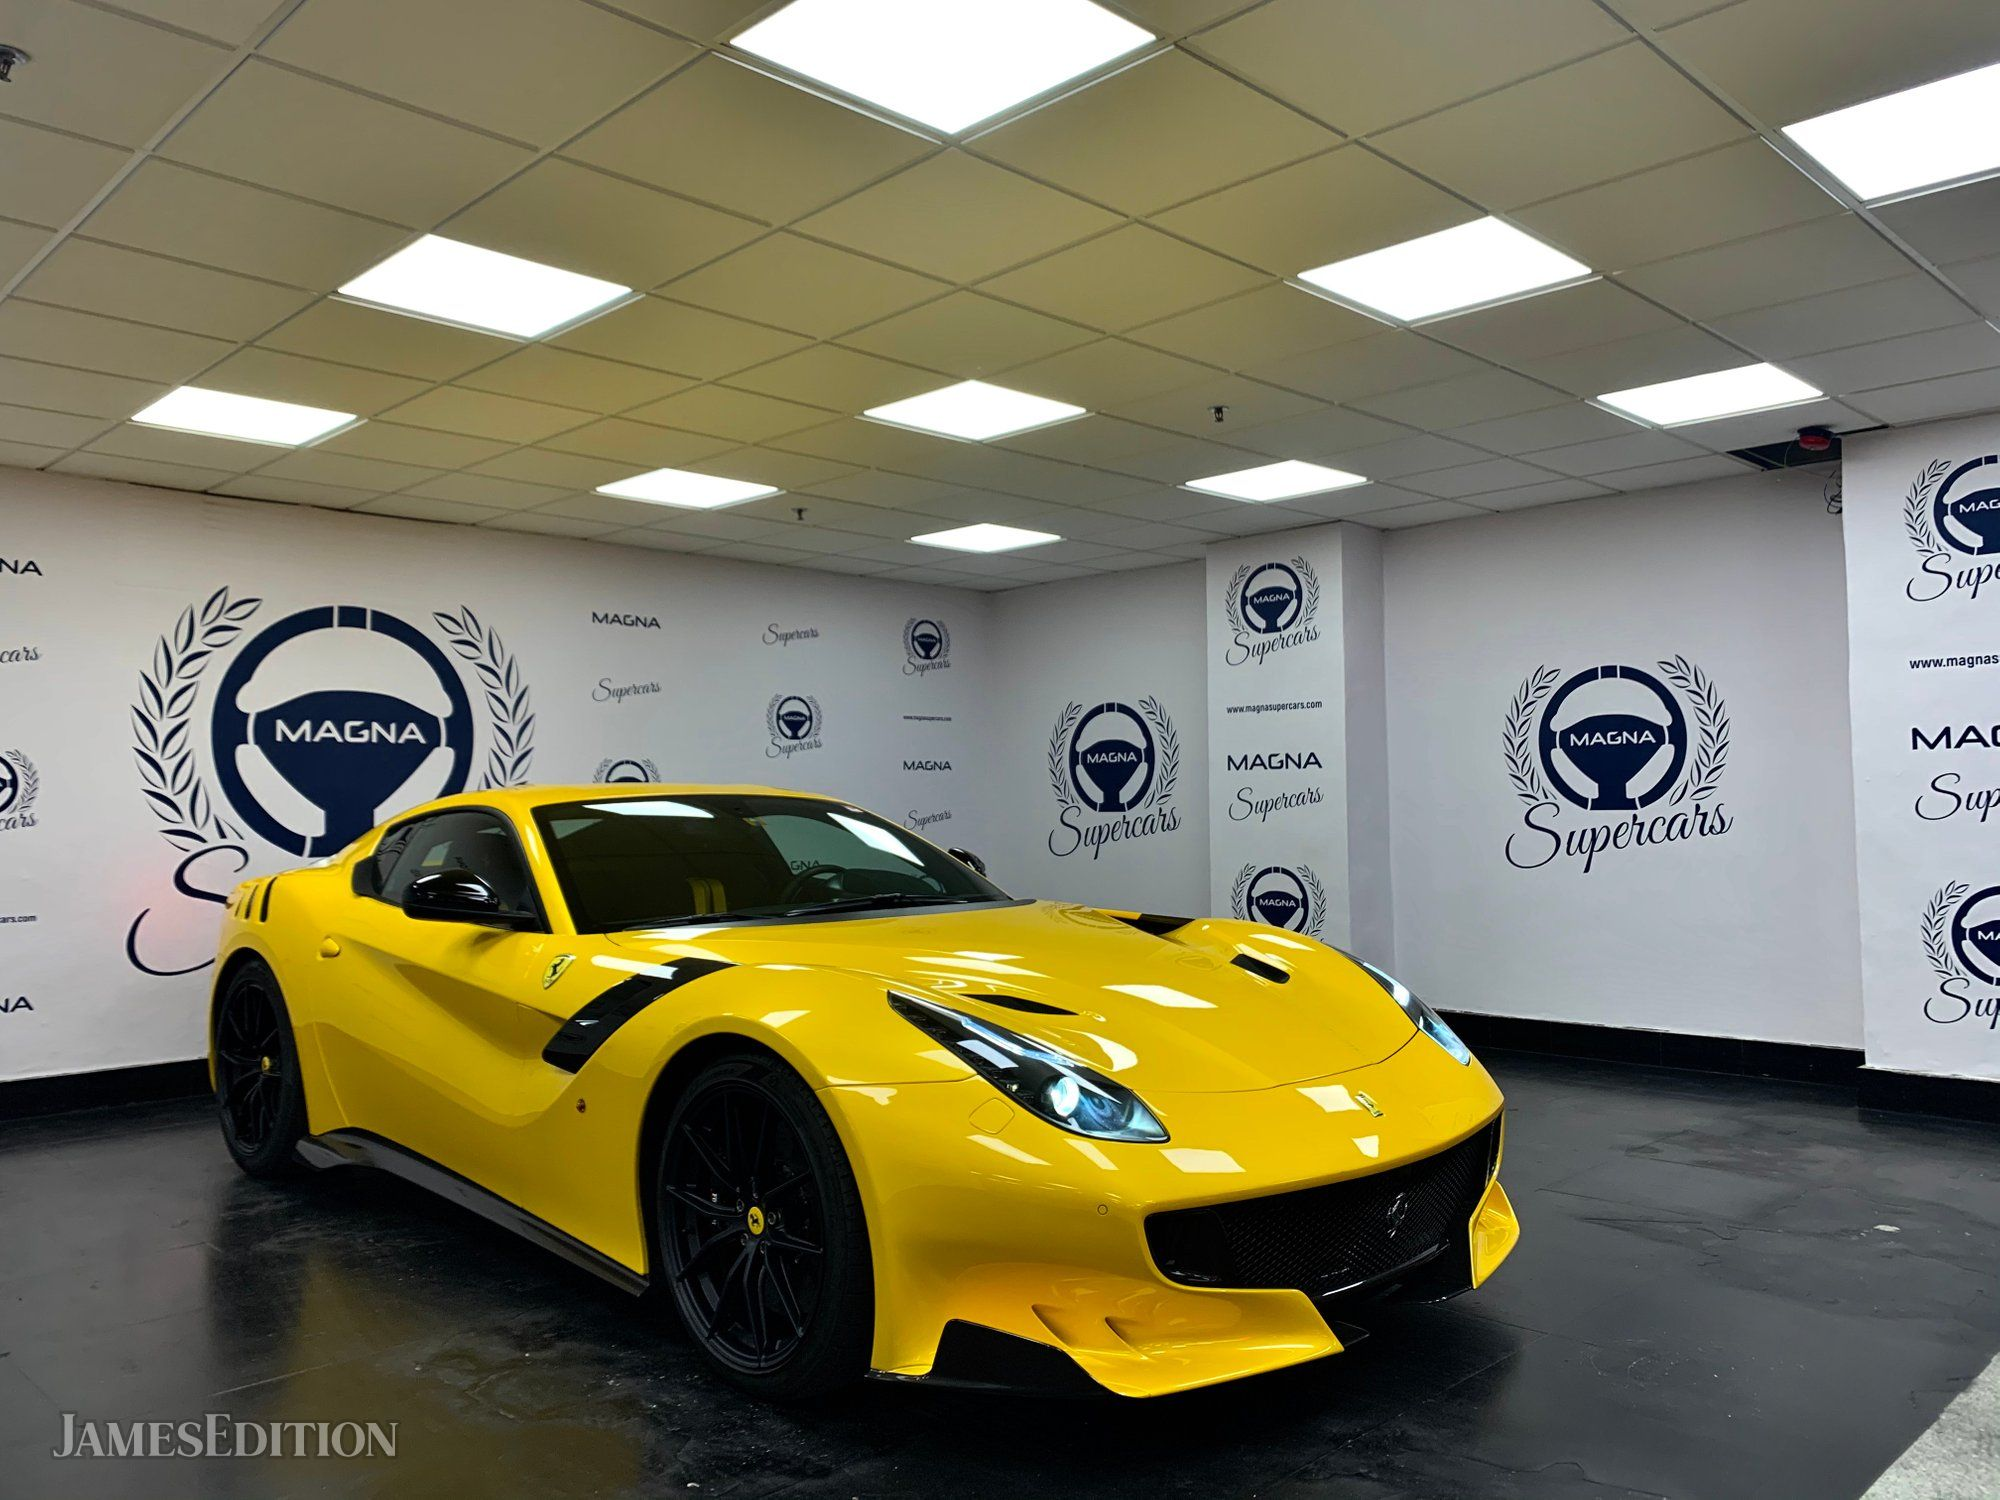 2018 Ferrari F12 Tdf In Marbella Spain For Sale 10994616